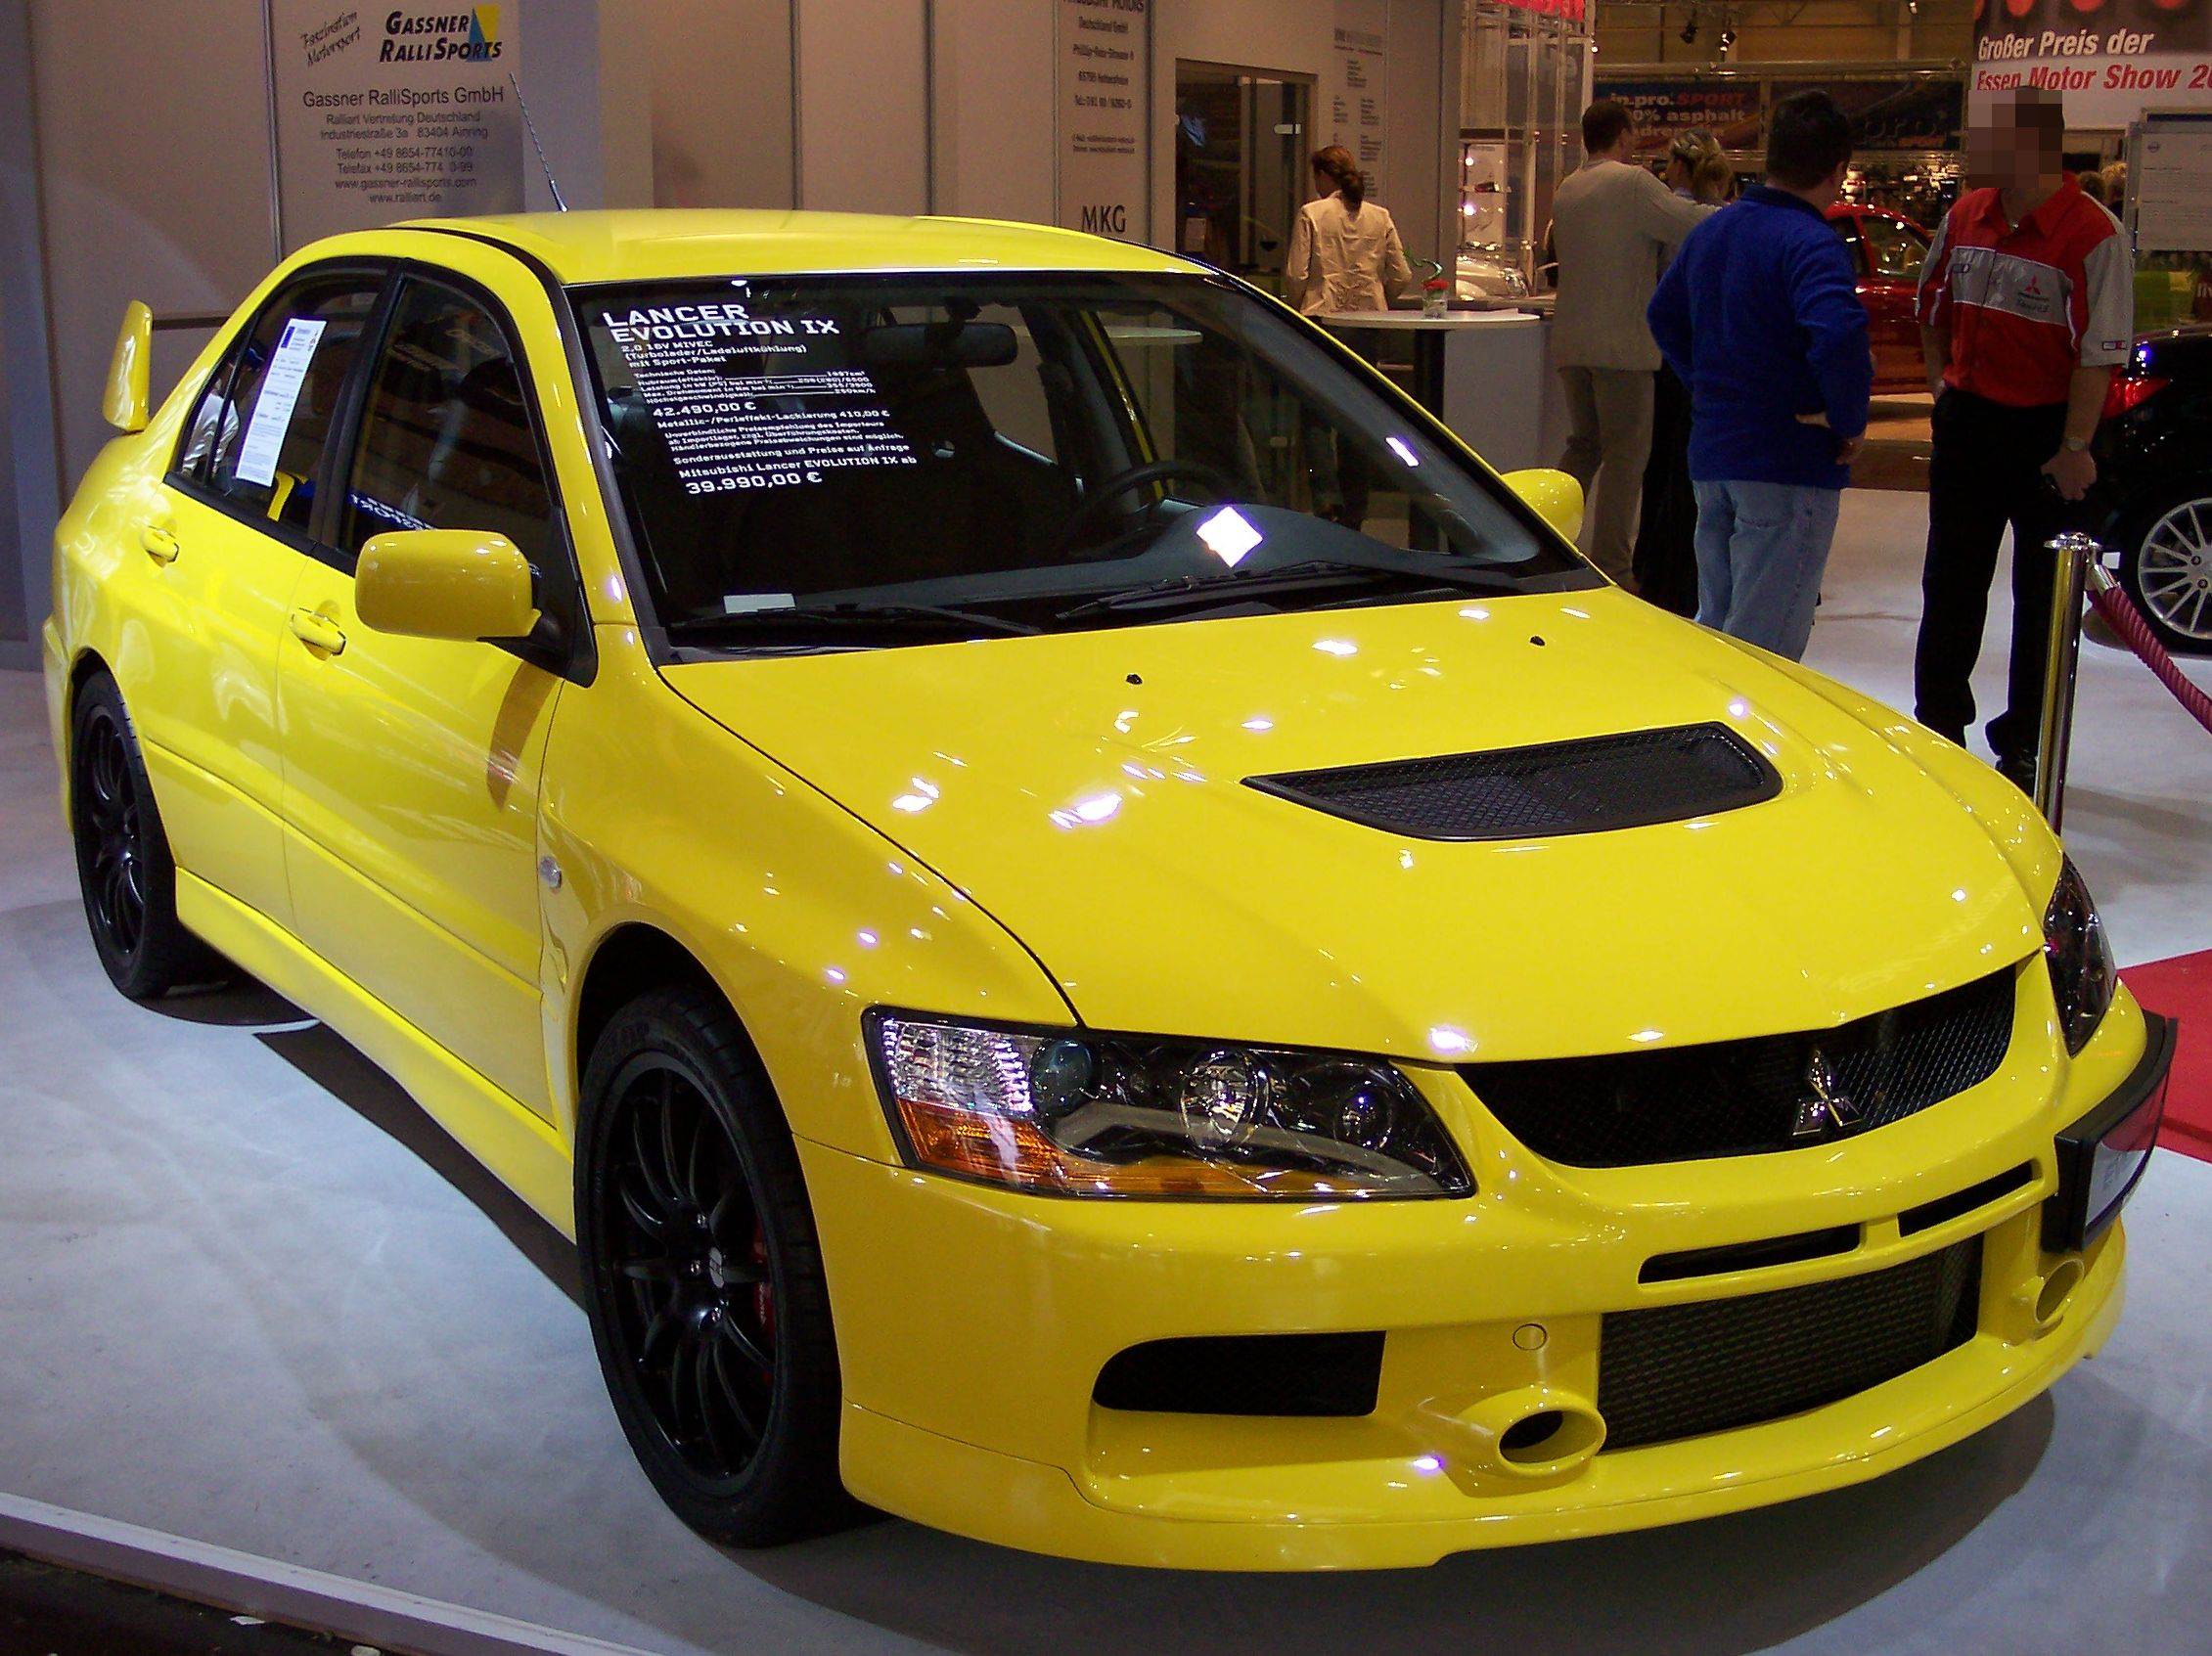 file mitsubishi lancer evolution ix yellow vr wikimedia commons. Black Bedroom Furniture Sets. Home Design Ideas